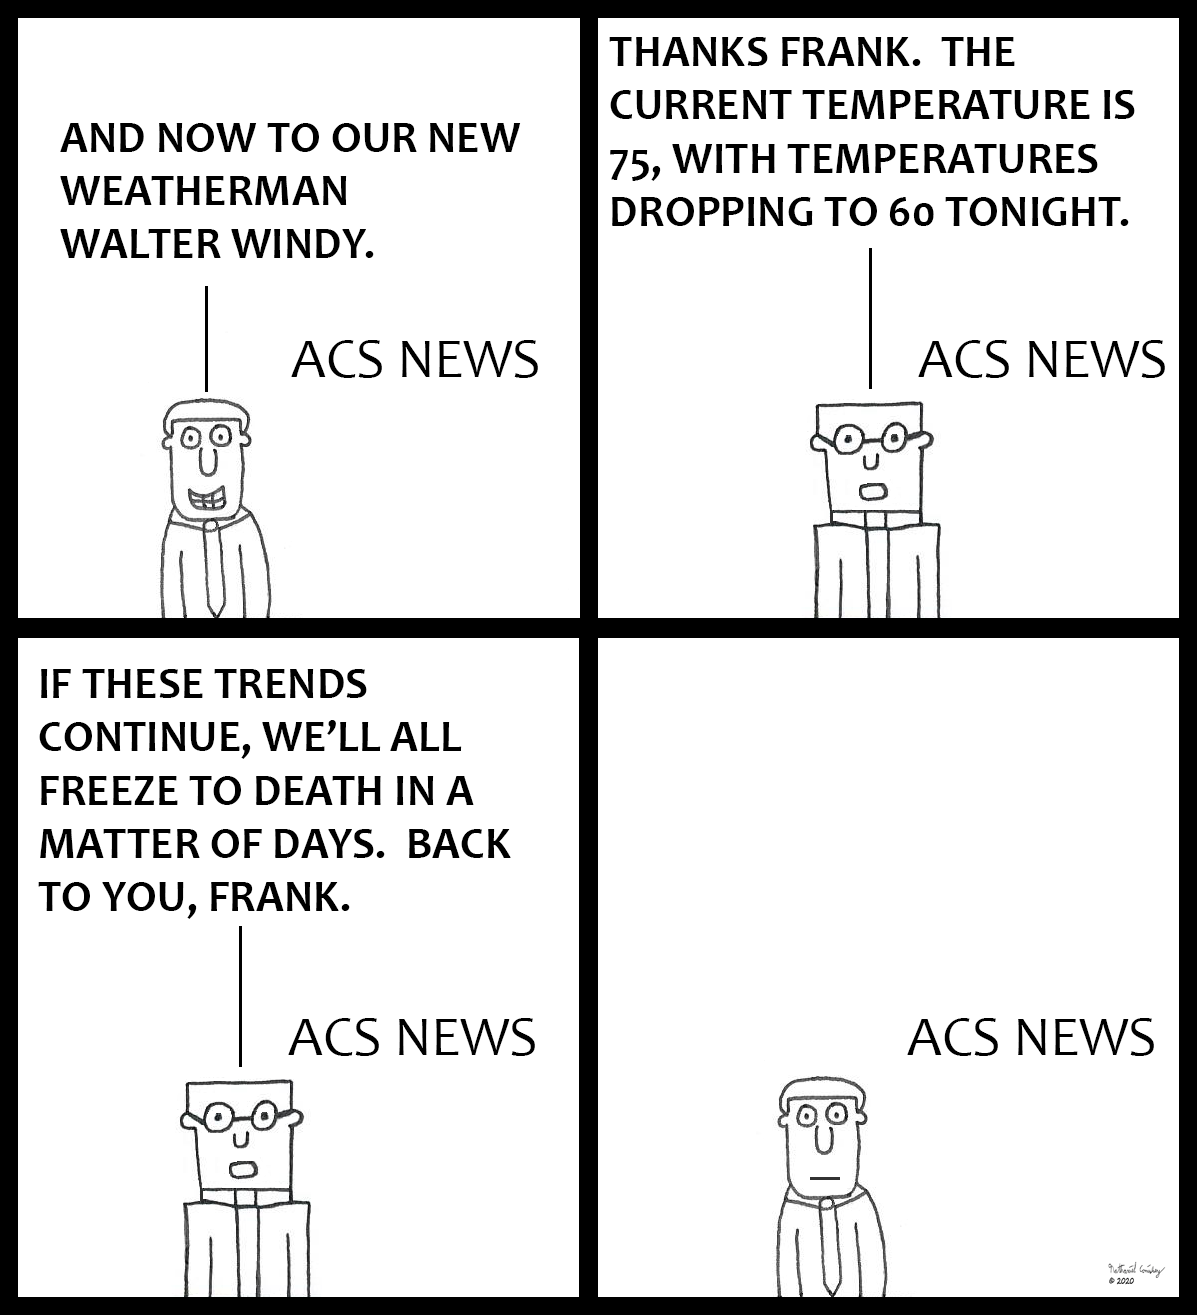 ACS News - Weather Trends